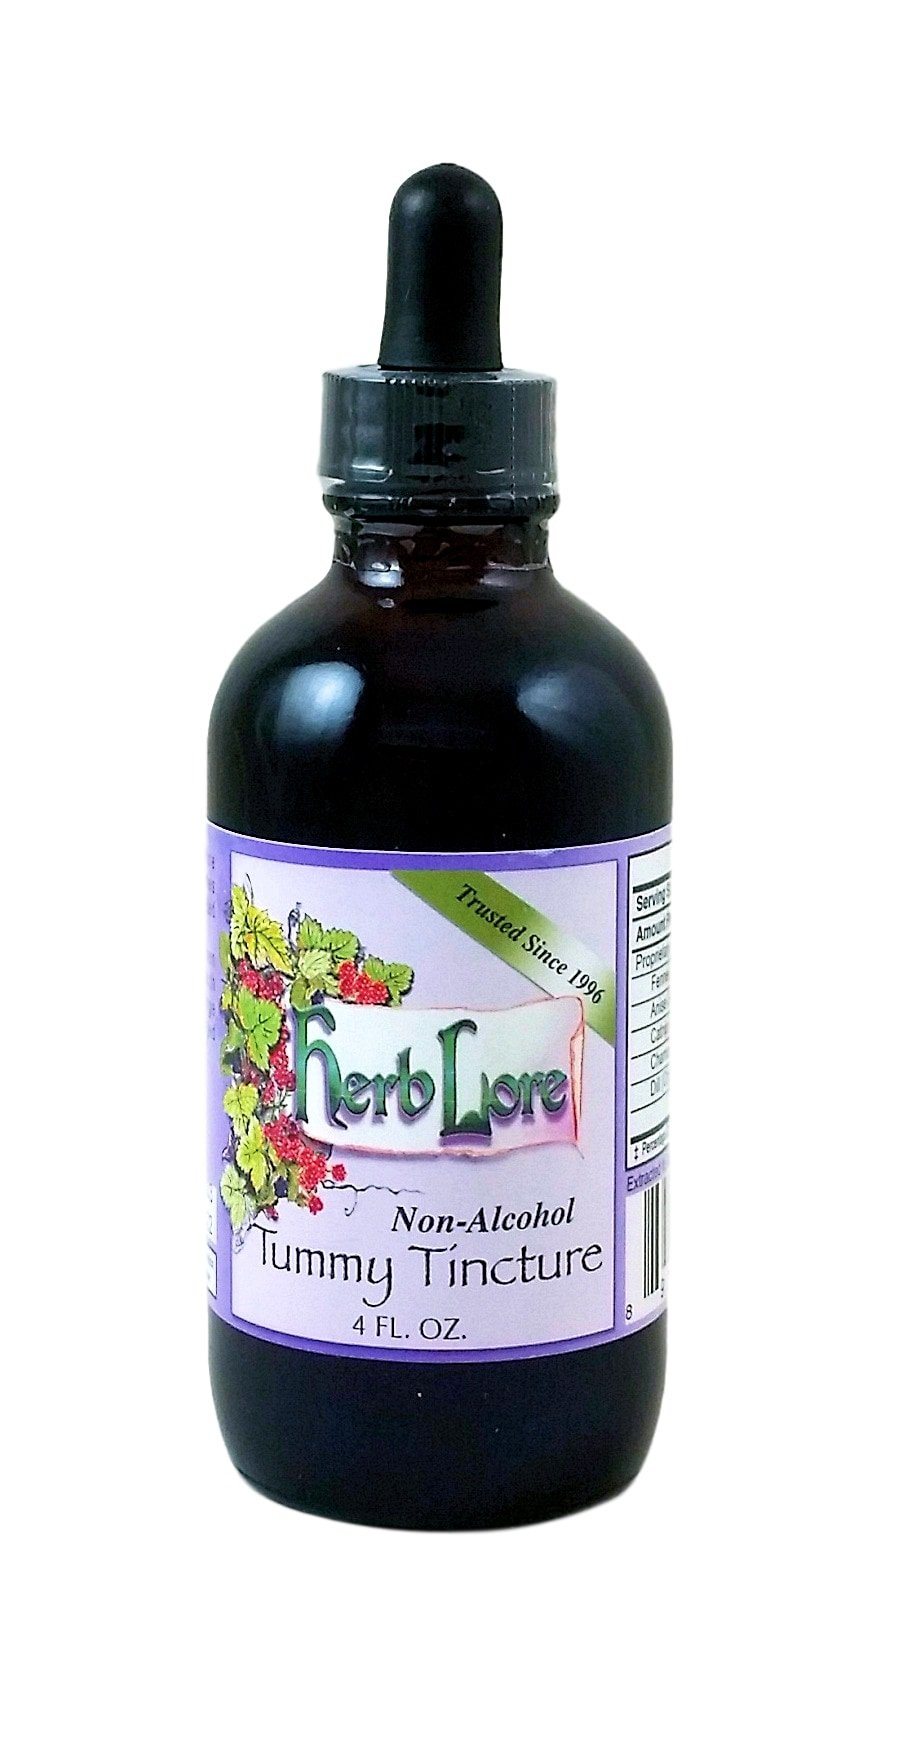 Herb Lore Organic Tummy Tincture, 4 Ounces, Non-Alcohol - Natural Herbal Formula for Relief of Heartburn, Acid Reflux, Nausea, Gas Pain and Infant Colic